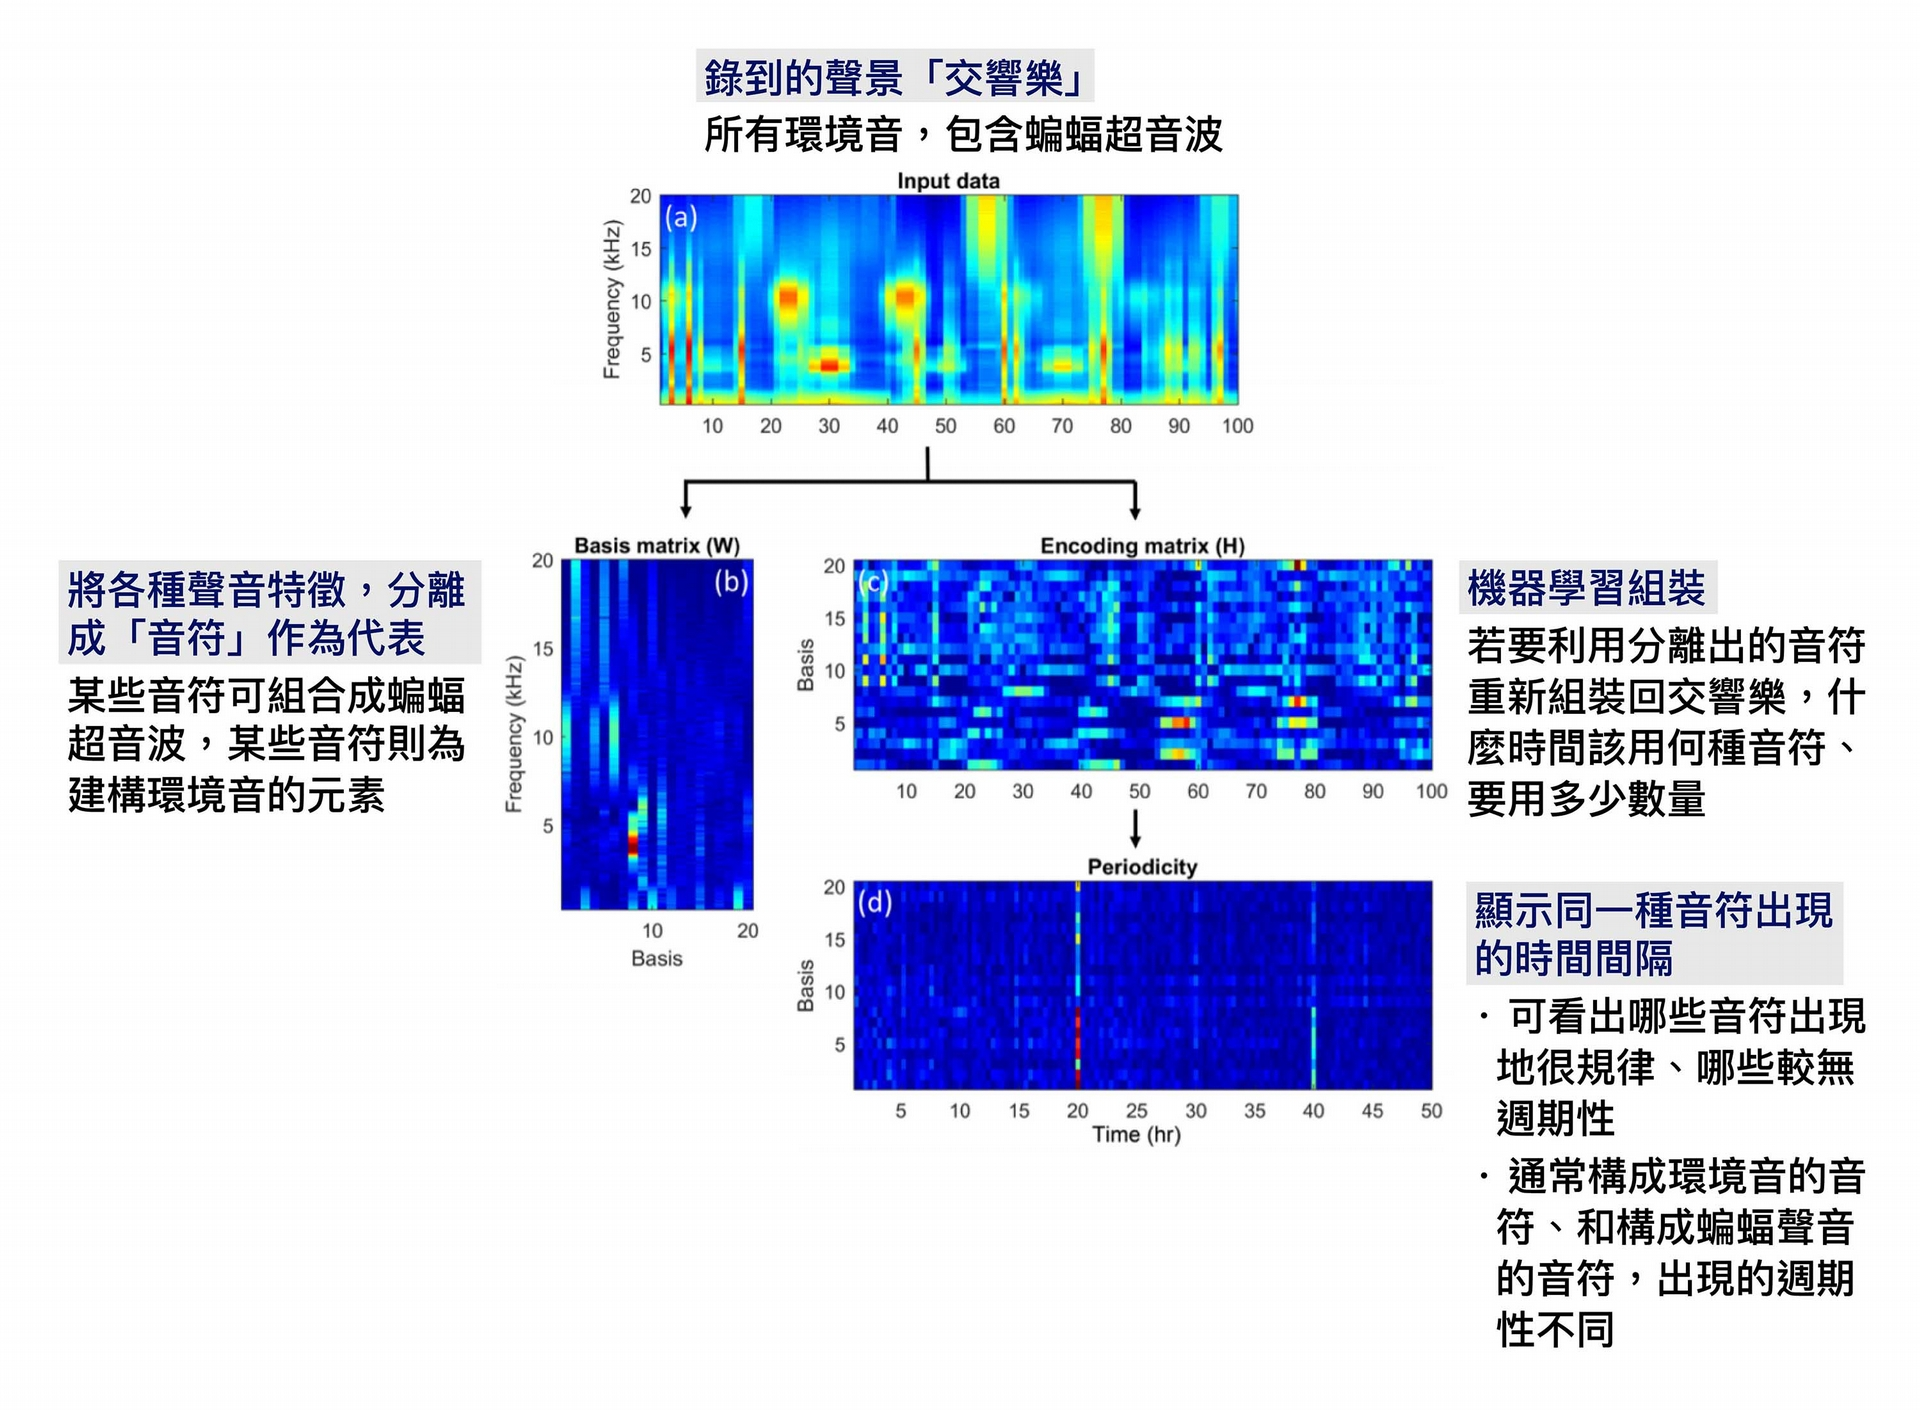 """PC-NMF 技術、與聲音頻譜圖示意。 圖│研之有物 (資料來源│T.-H. Lin, S.-H. Fang, and Y, Tsao, """"Improving Biodiversity Assessment via Unsupervised Separation of Biological Sounds from Long-duration Recordings,"""" Scientific Reports, volume 7, number 4547, pages 1, July 2017.)"""